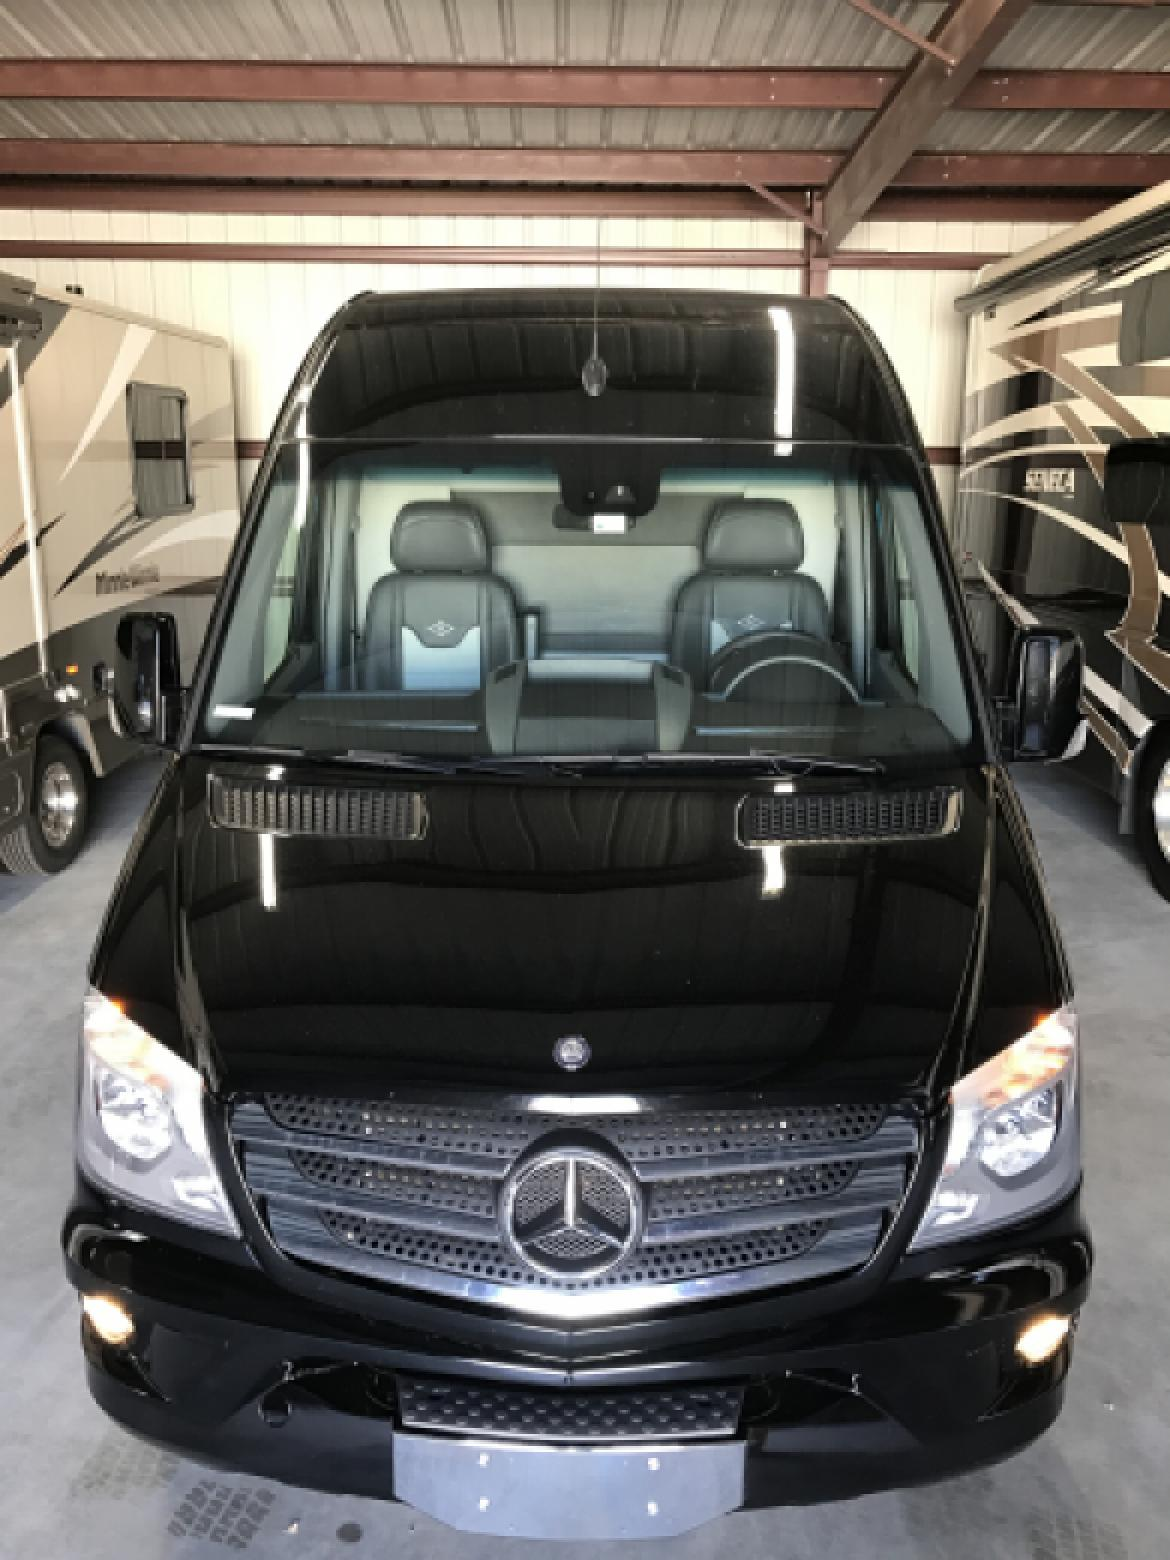 Photo of Sprinter for sale: 2014 Mercedes  Sprinter 2500 by McSweeney Designs